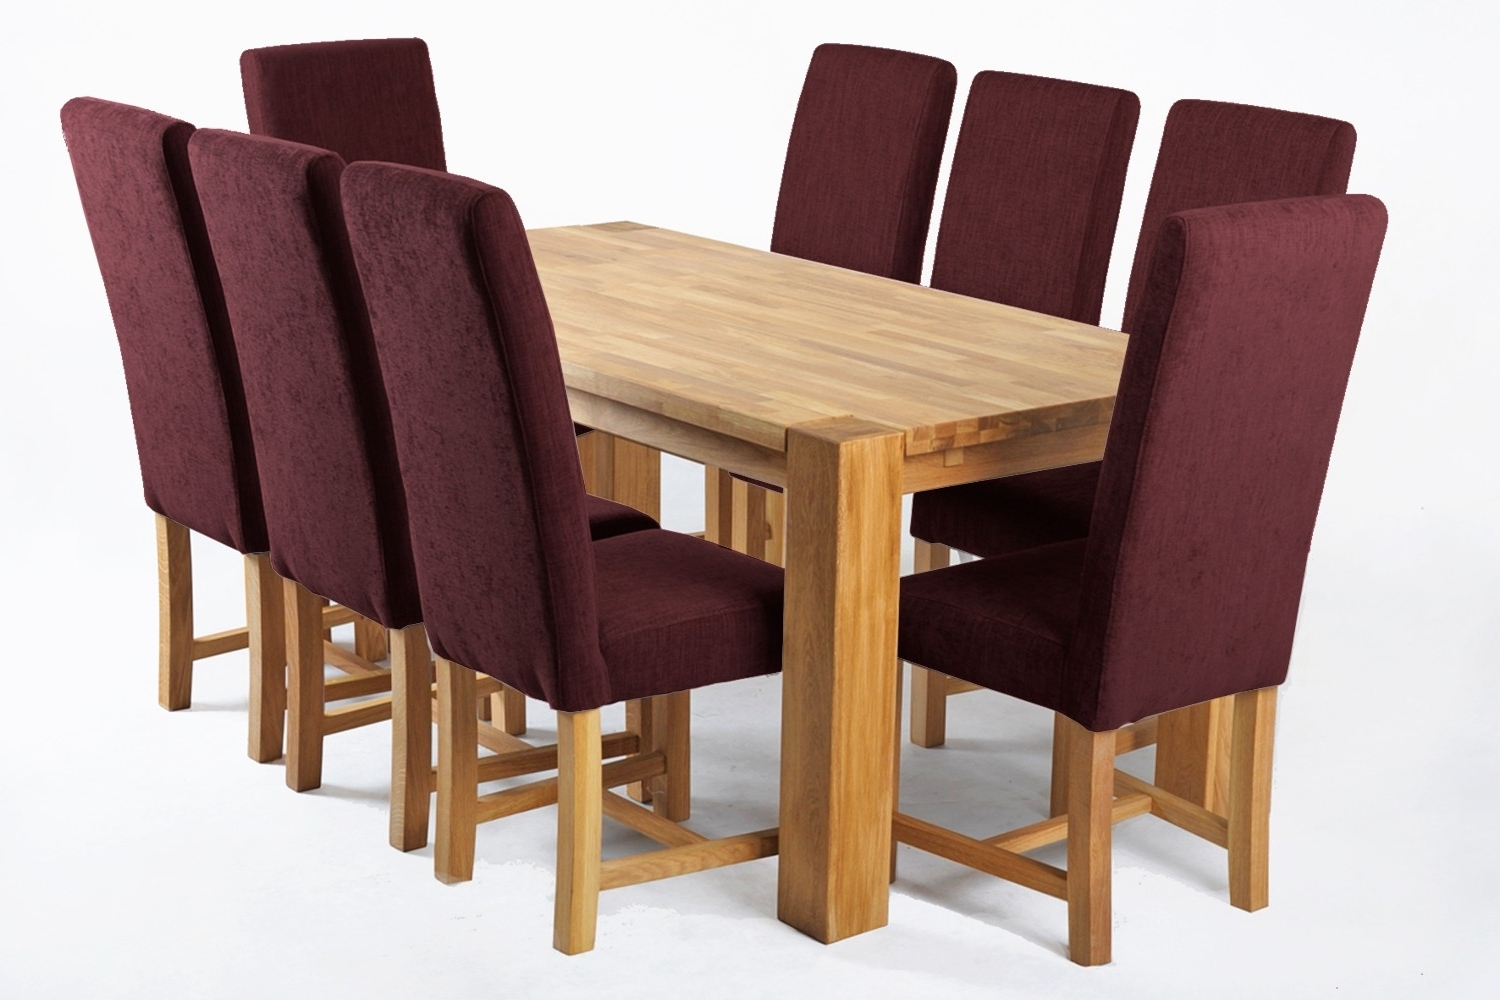 Oak Dining Tables And Fabric Chairs Throughout Famous Kensington Fabric Dining Chair With Massive Oak Legs – Vino (View 17 of 25)